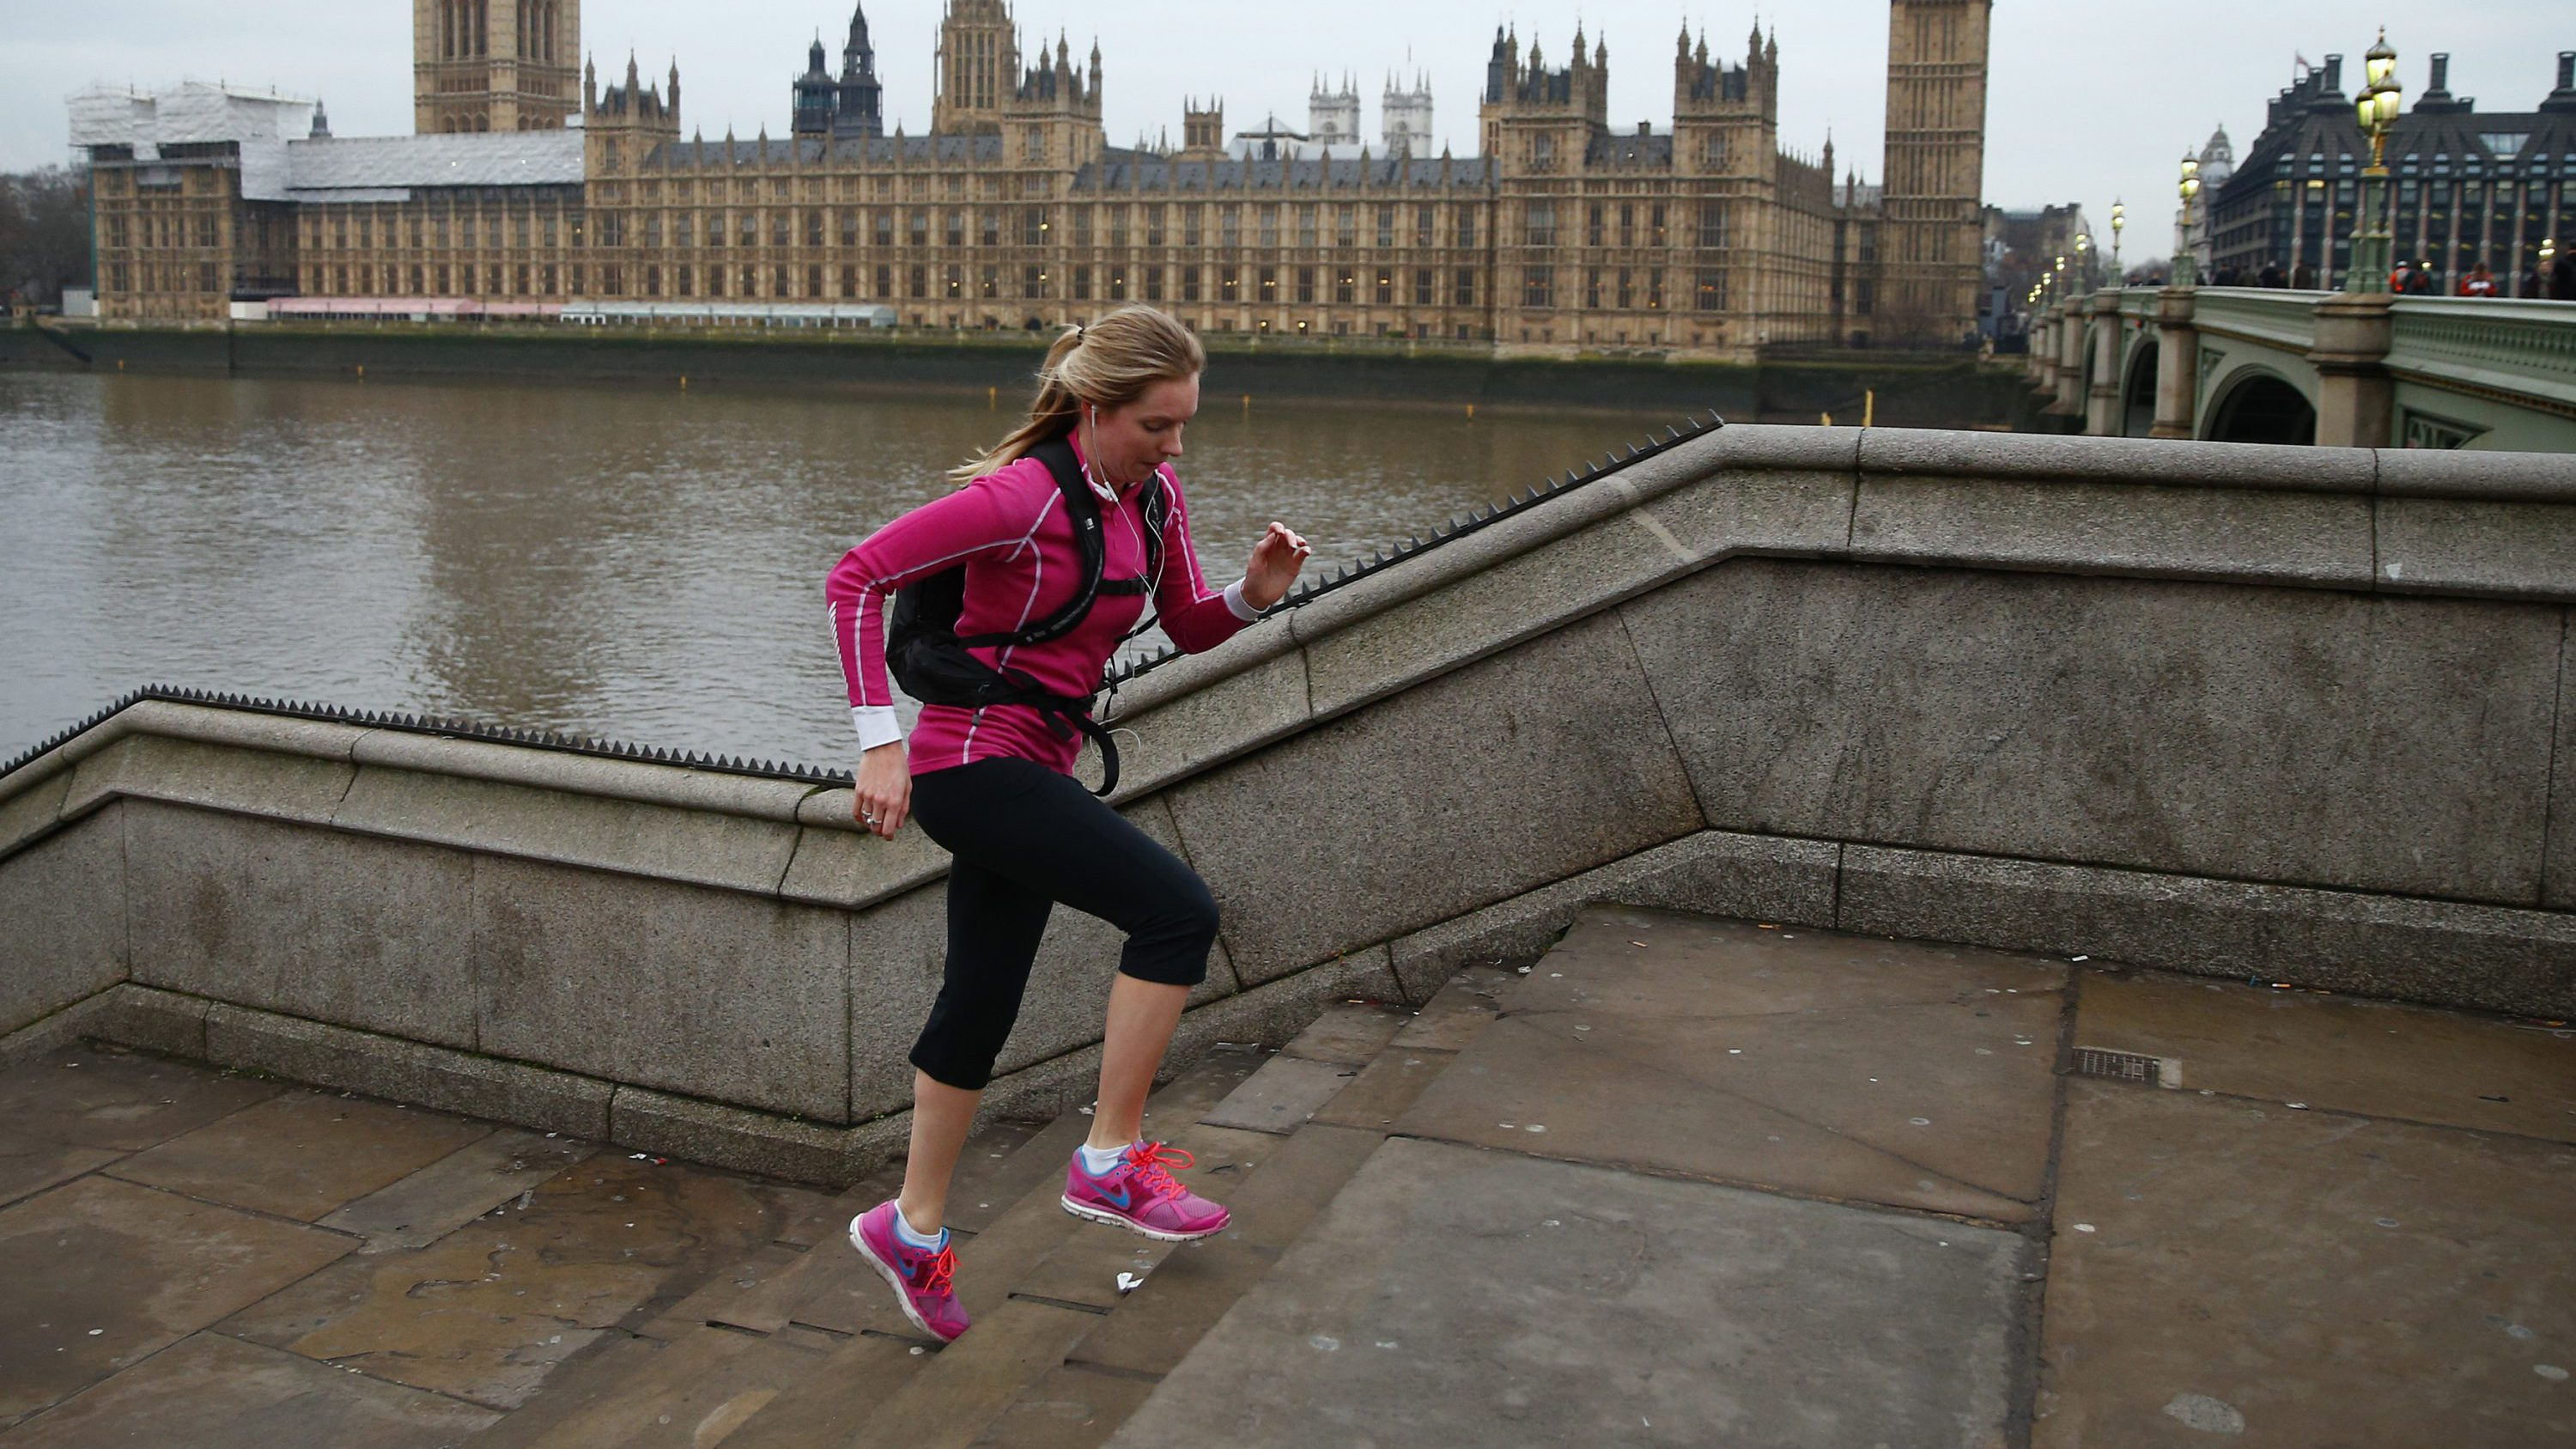 A jogger takes an early morning run in central London January 5, 2015.